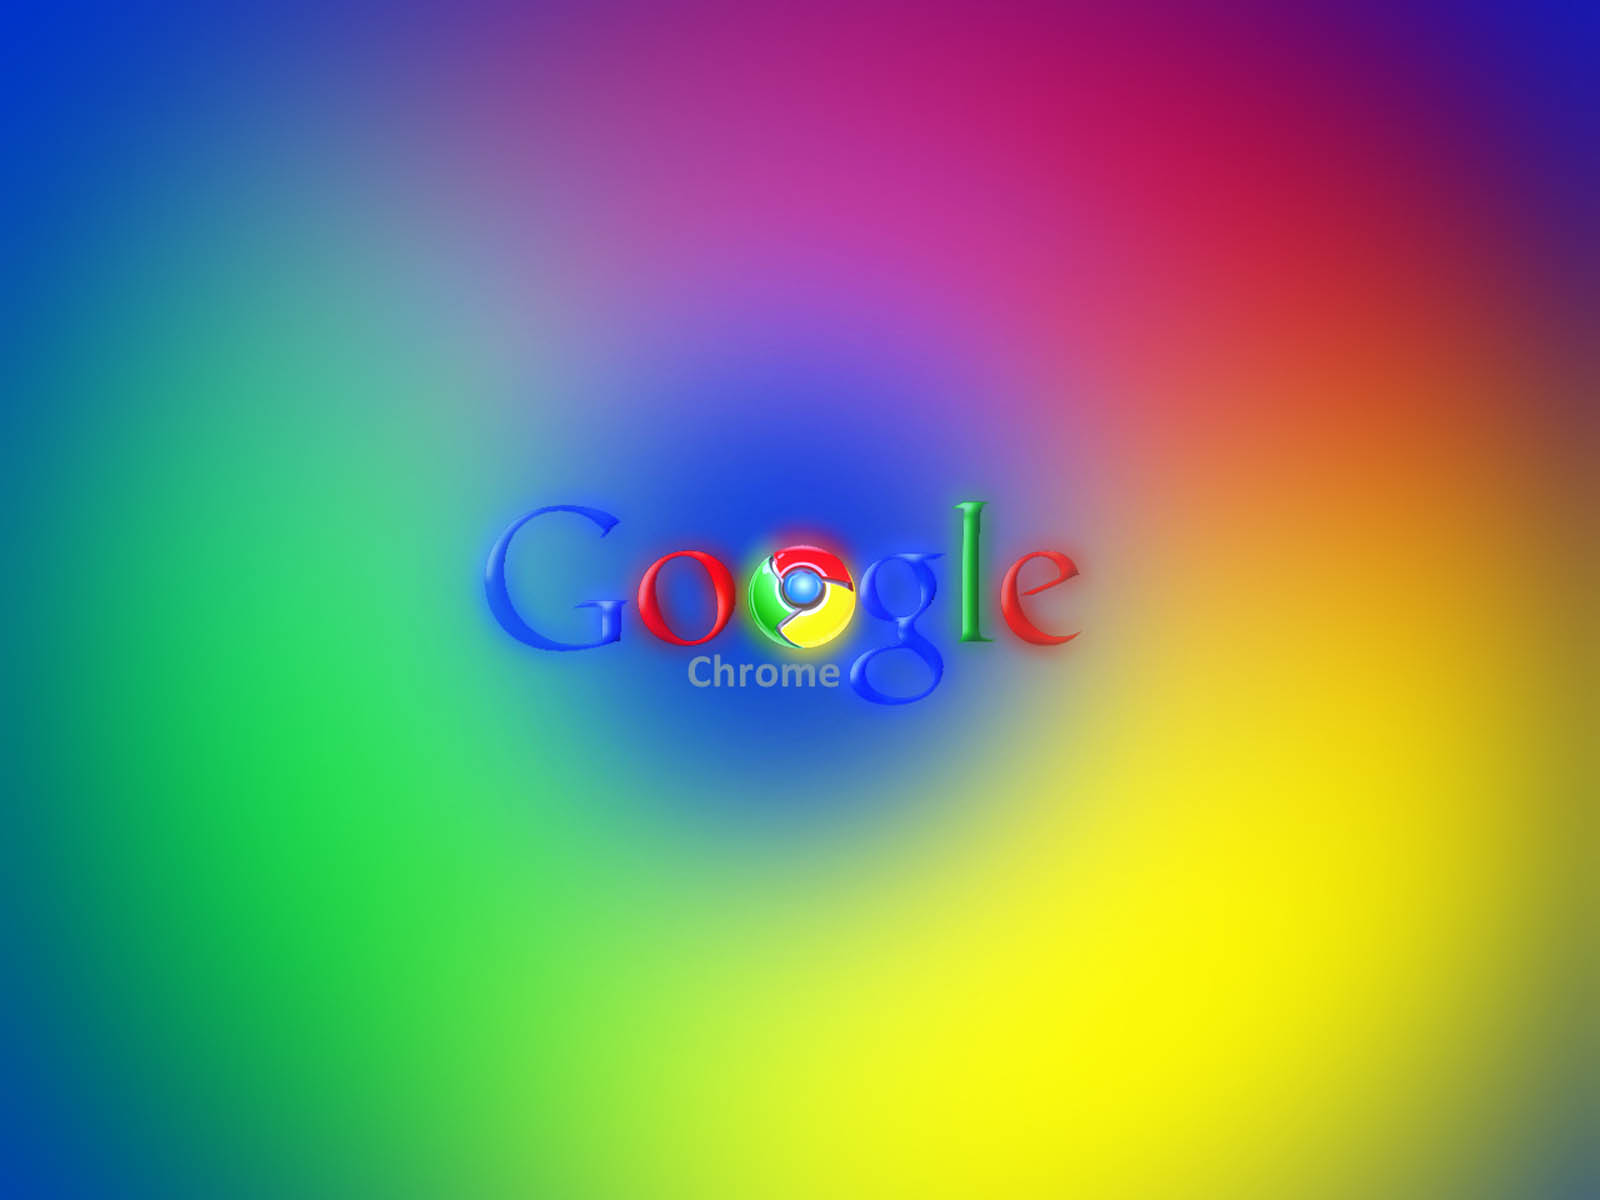 Wallpaper google chrome wallpapers for Goodl